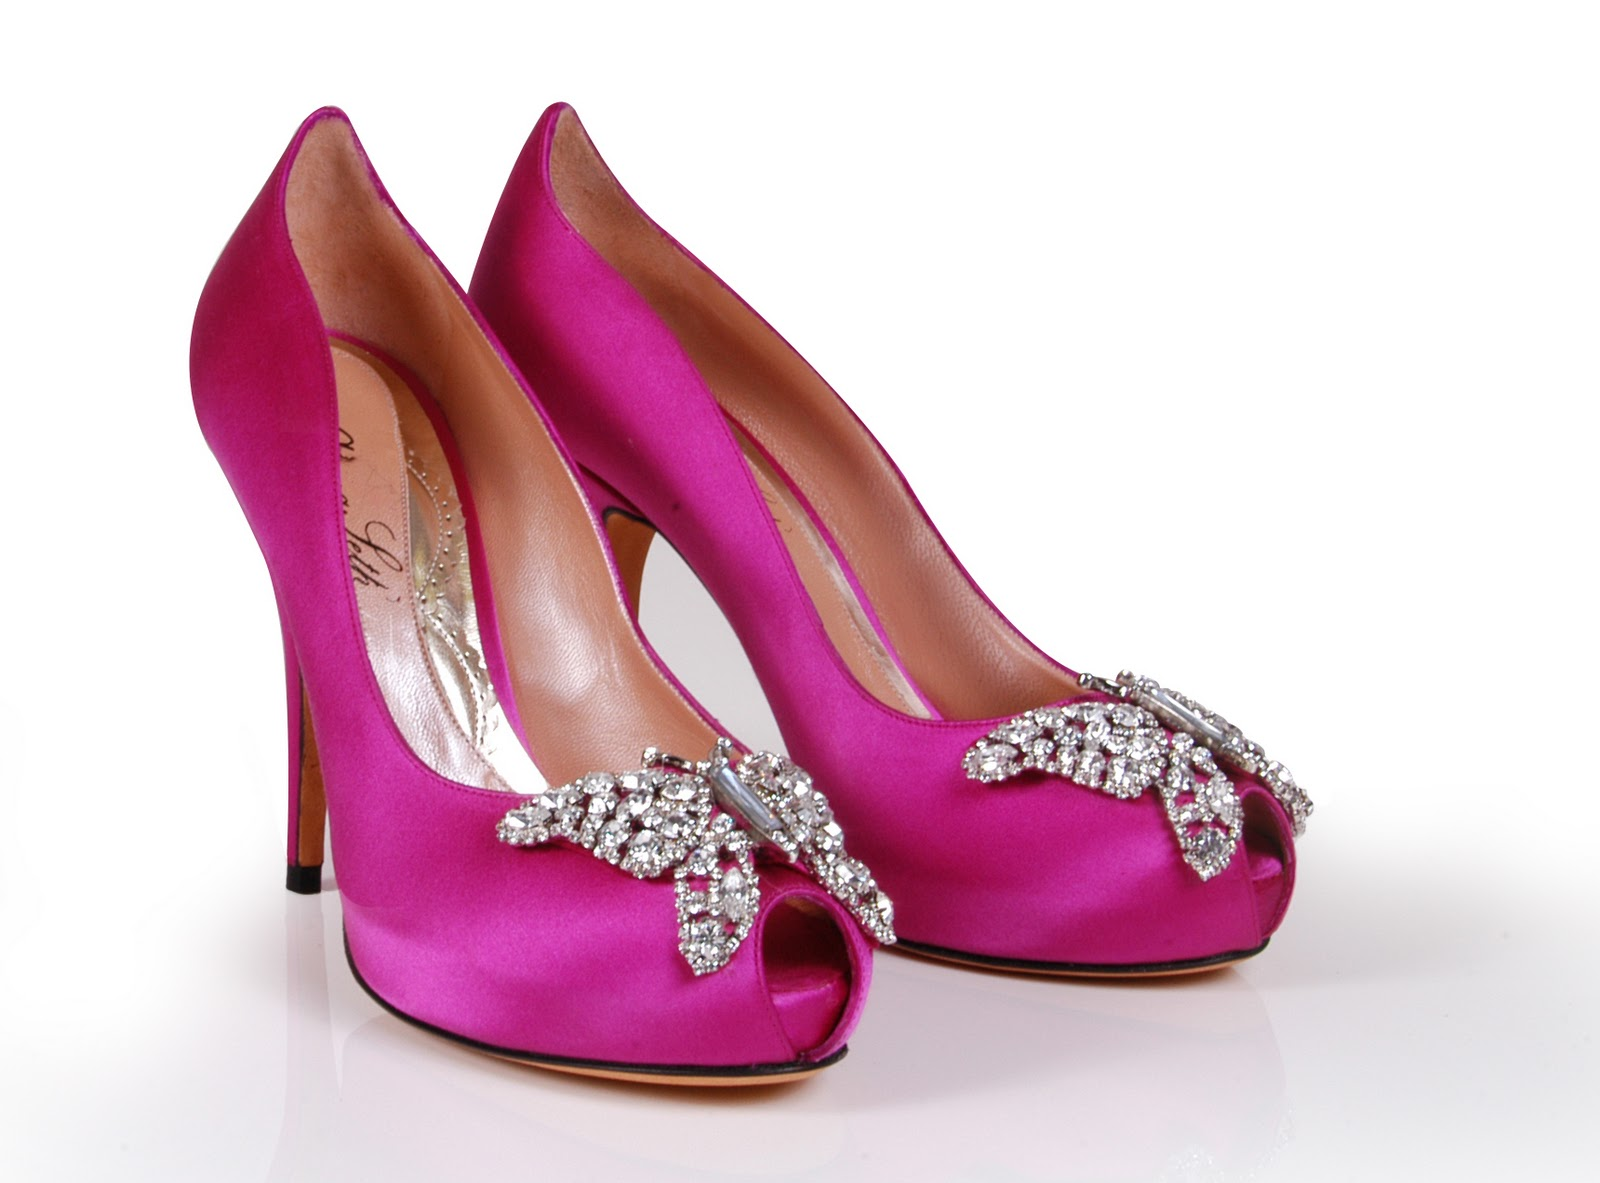 Pink High Heels For Wedding: Aruna Seth Blog: September 2011